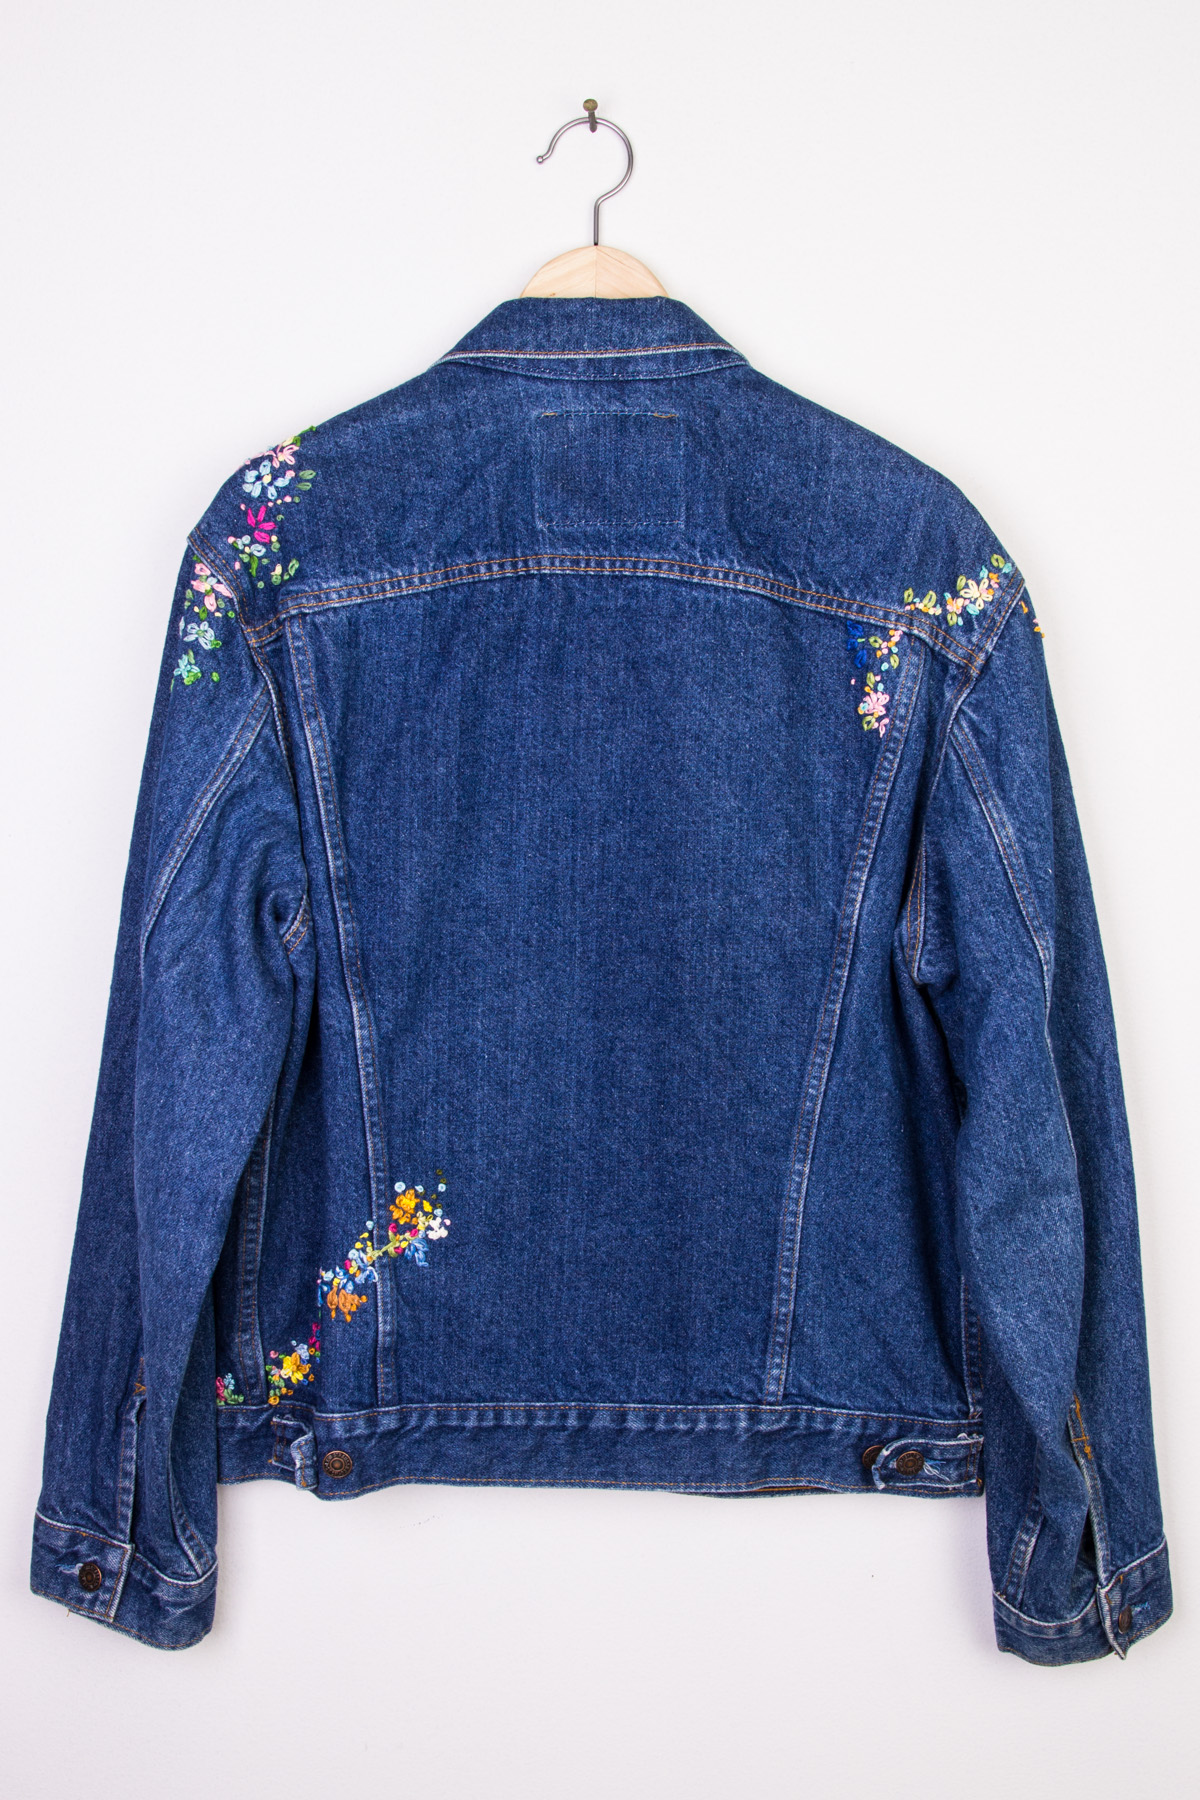 Vintage Denim Jackets – Jackets